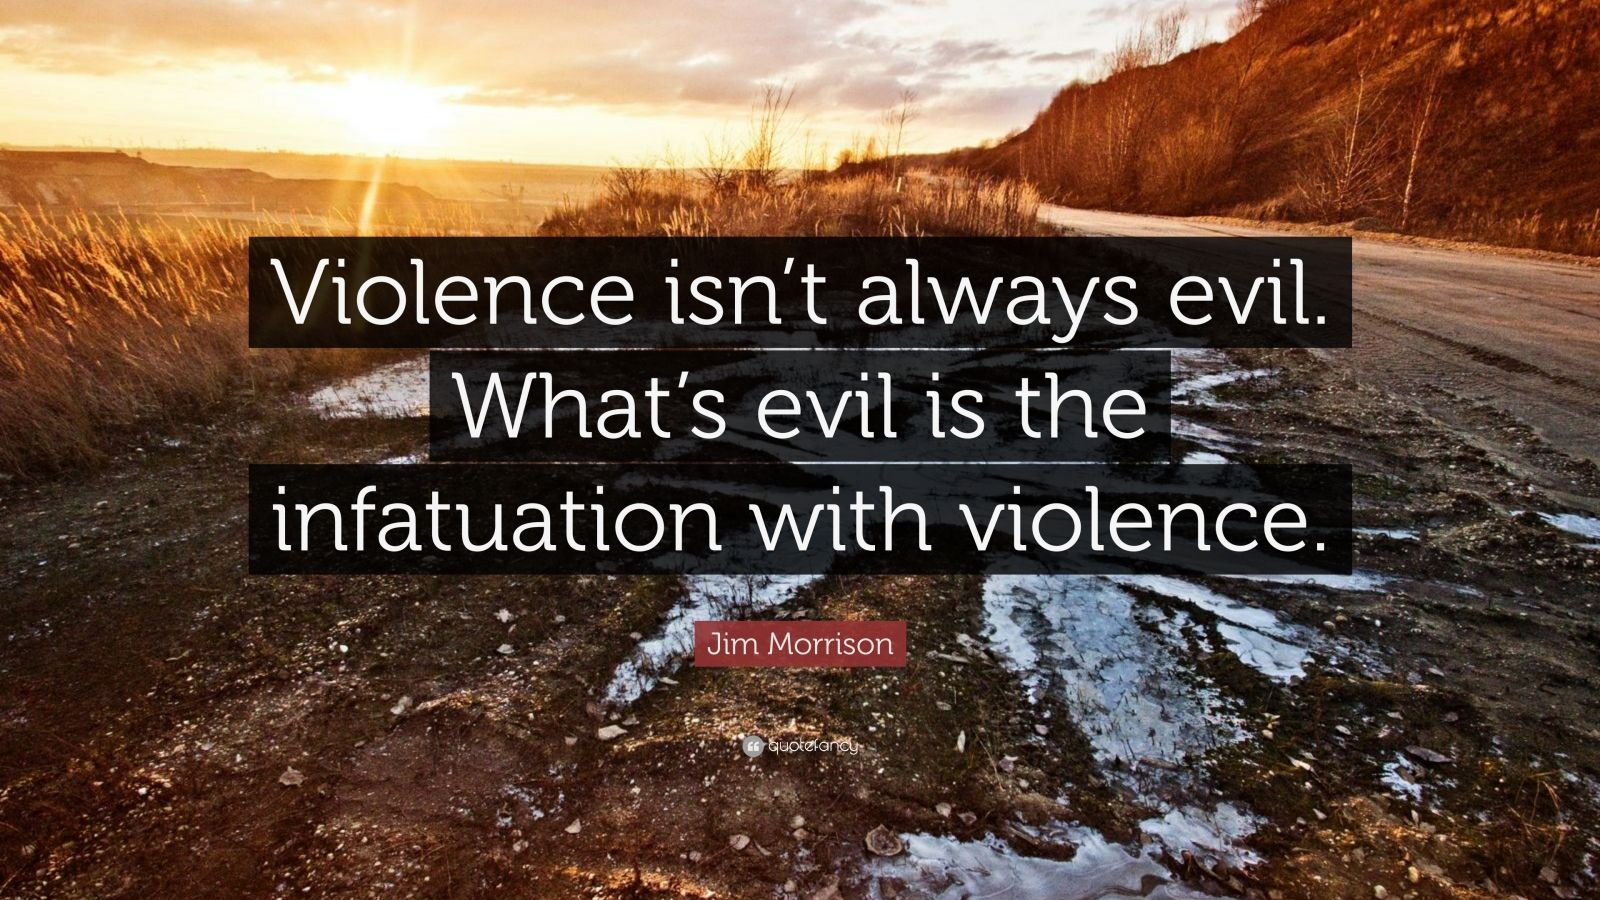 """Jim Morrison Quote: """"Violence isn't always evil. What's evil is the infatuation with violence."""""""